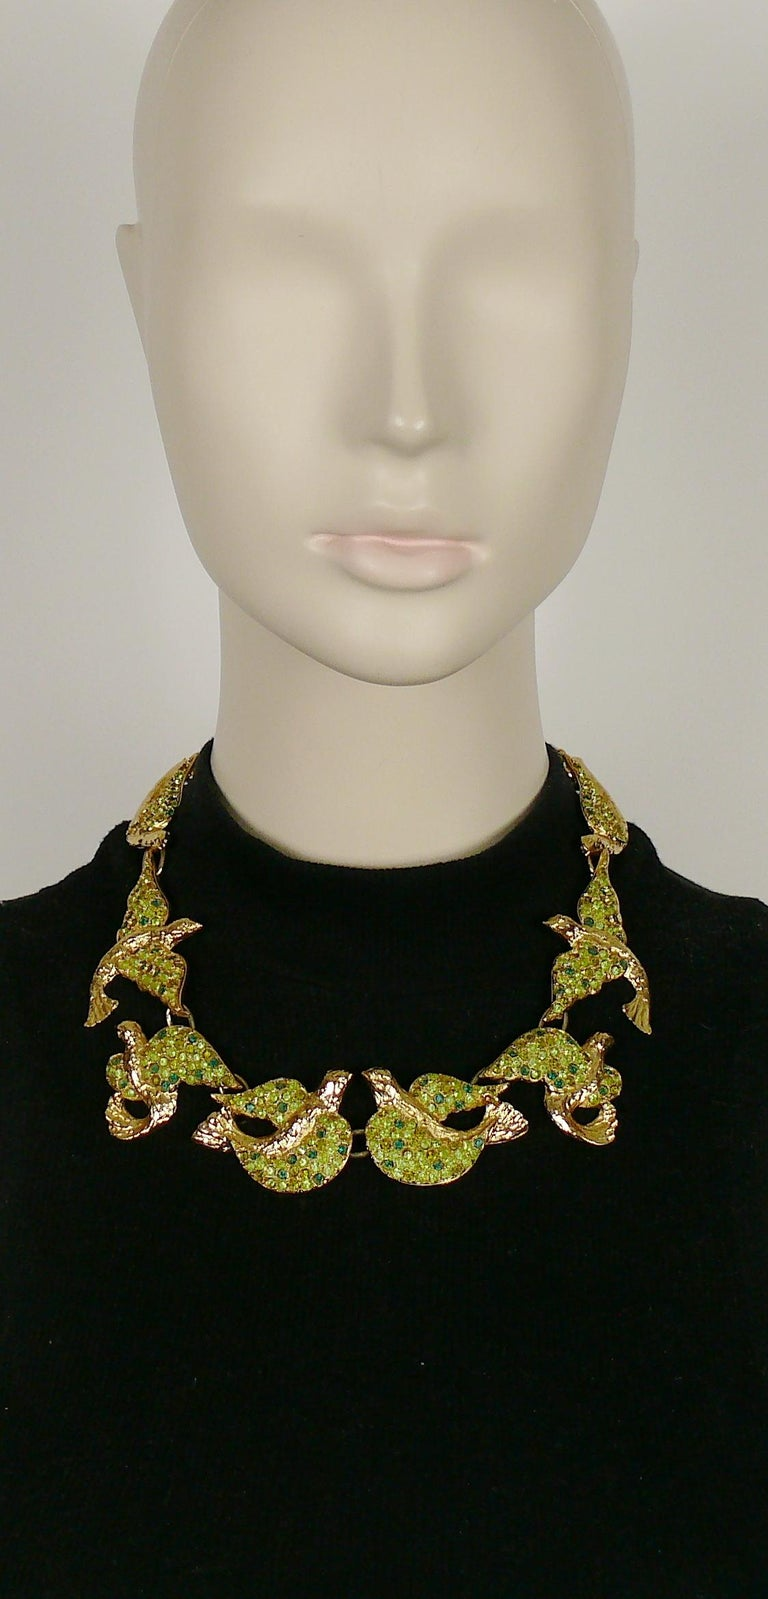 YVES SAINT LAURENT vintage rare gold toned necklace featuring bird links embellished with green shade crystals.  Lobster clasp closure. Adjustable length.  Embossed YSL Made in France.  Indicative measurements : adjustable length from approx. 43 cm